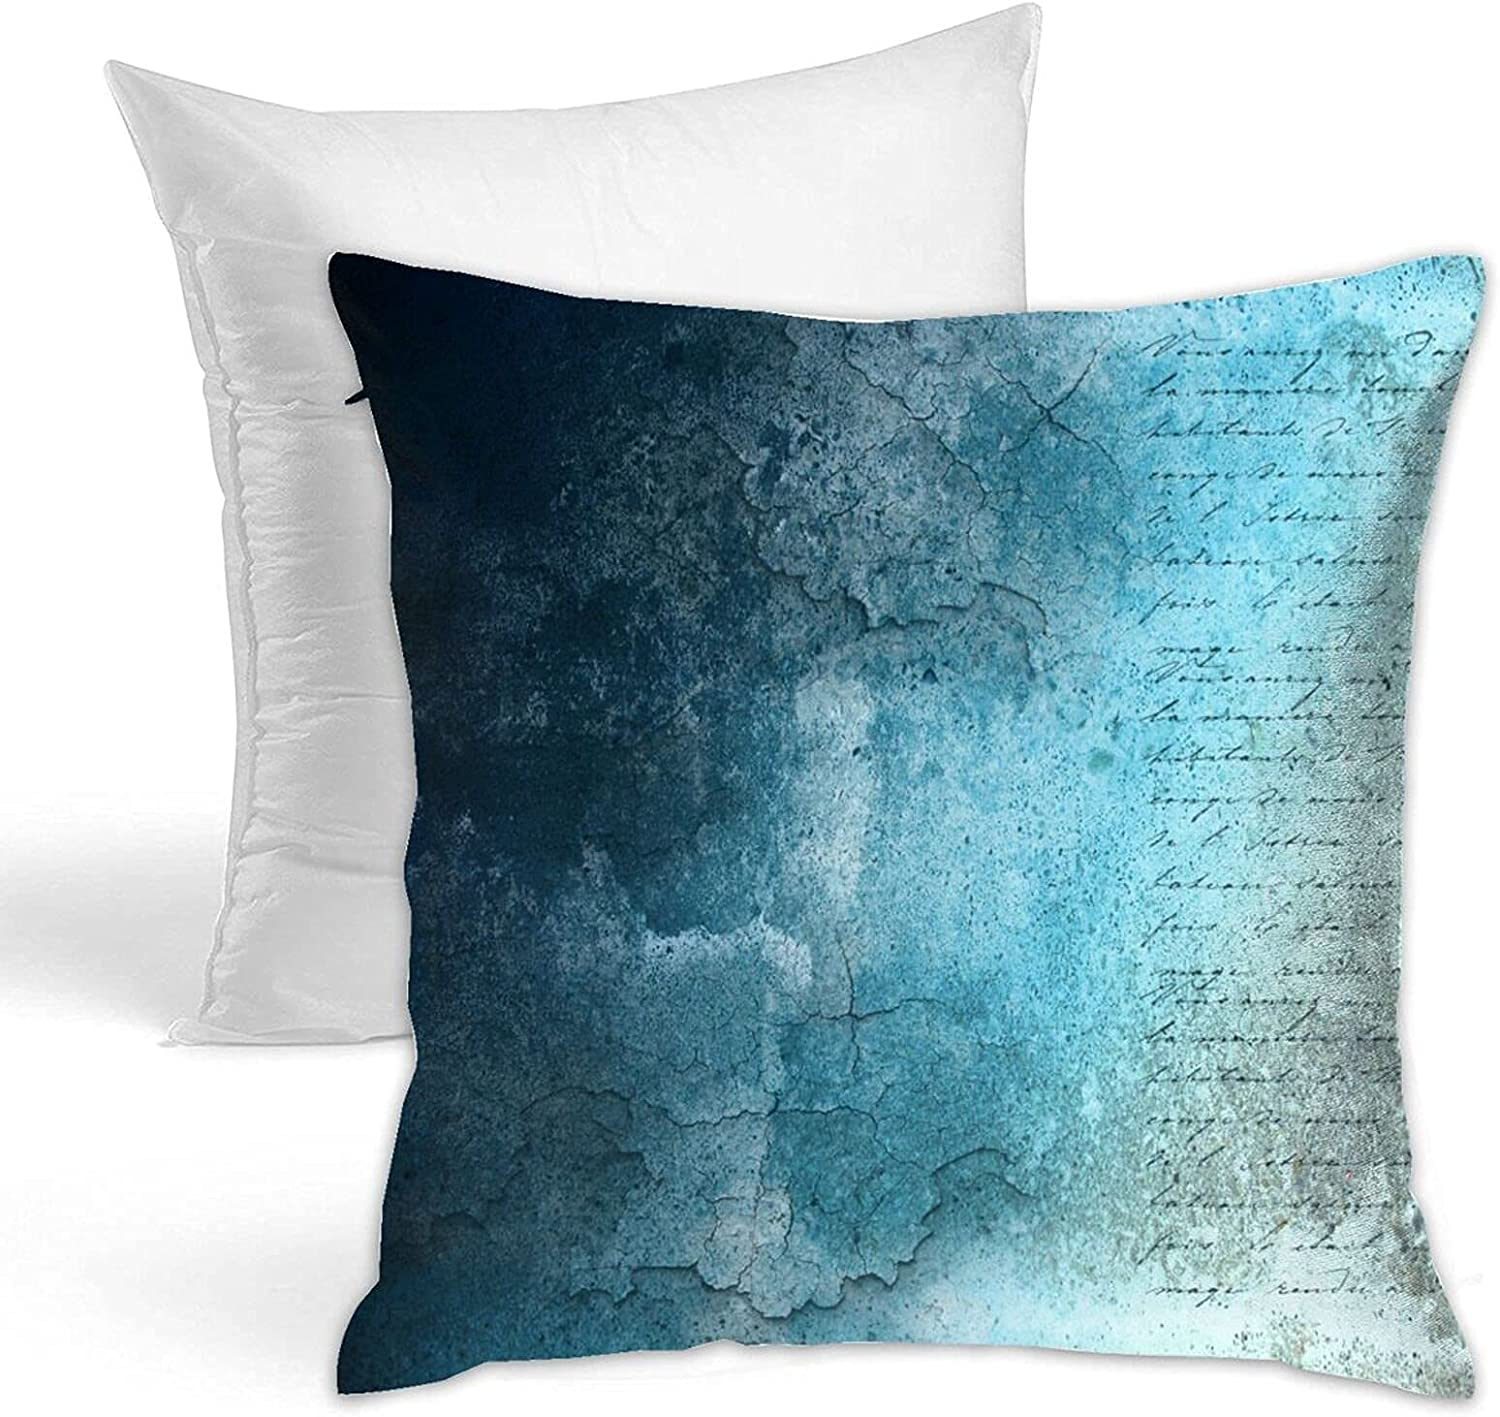 QIAOQIAO Throw Pillow Blue Grunge Pillo Decorative Vintage Paper New half York Mall